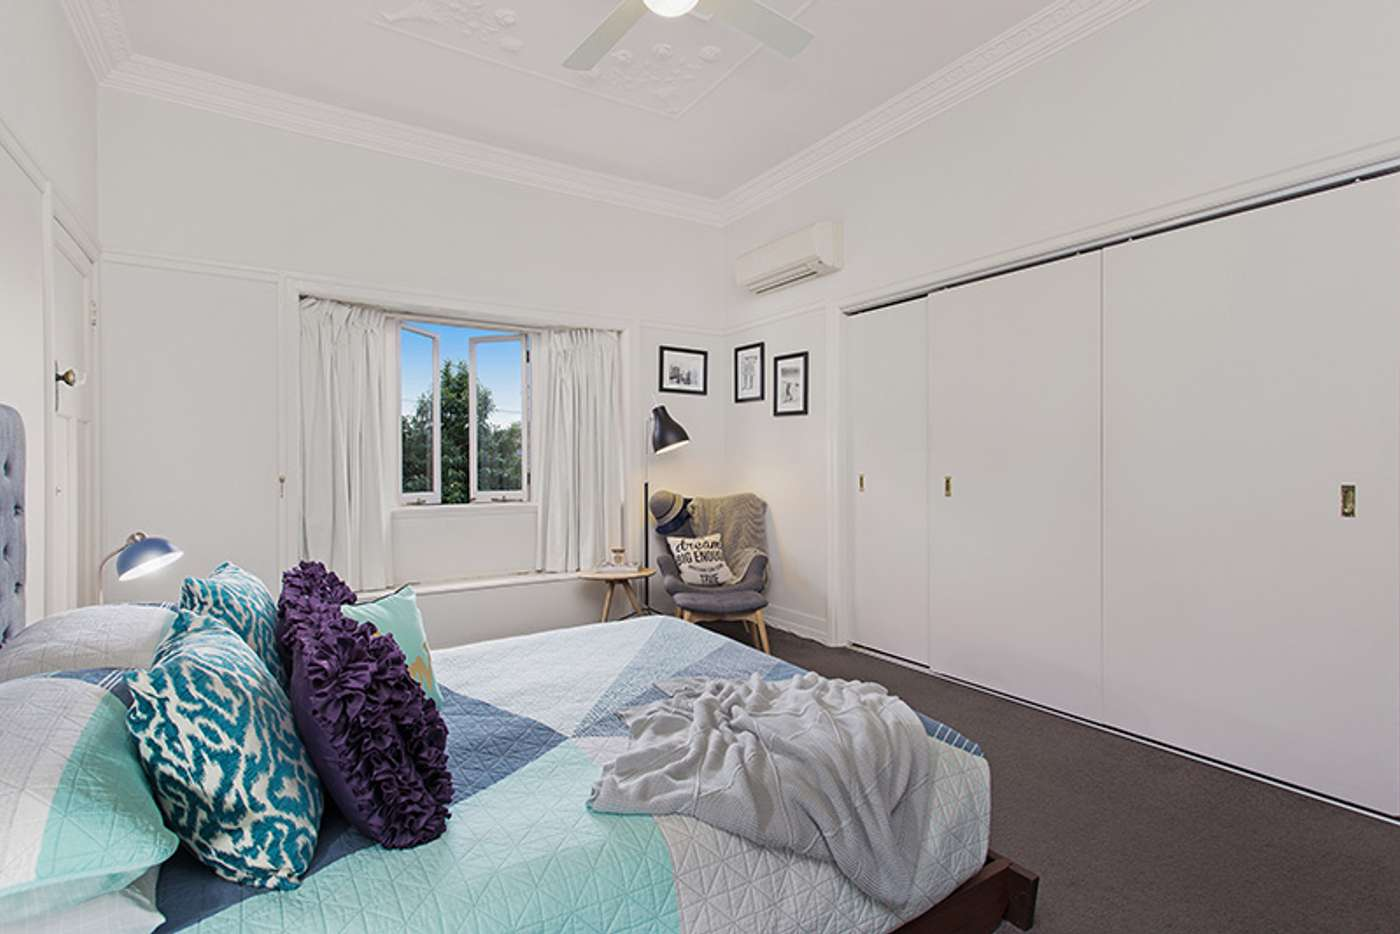 Sixth view of Homely house listing, 24 Elgin Street, Alderley QLD 4051